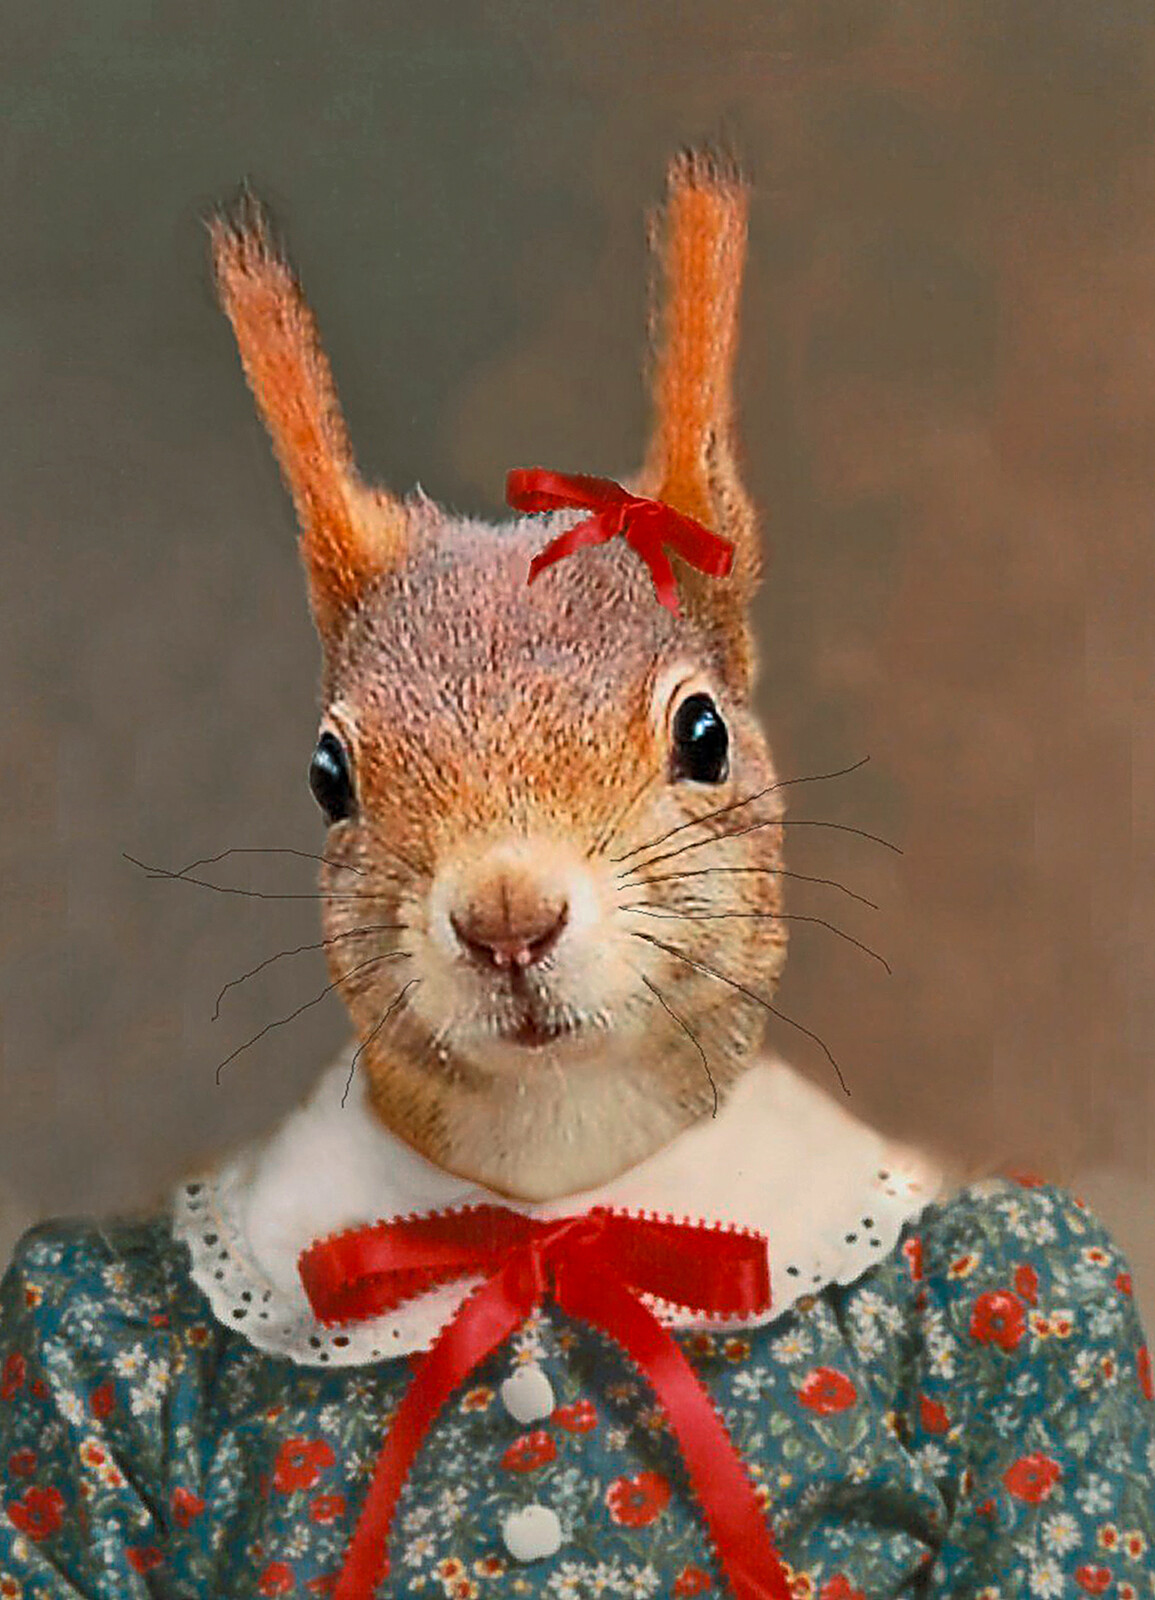 Stephanie the Squirrel by Angela Rossi